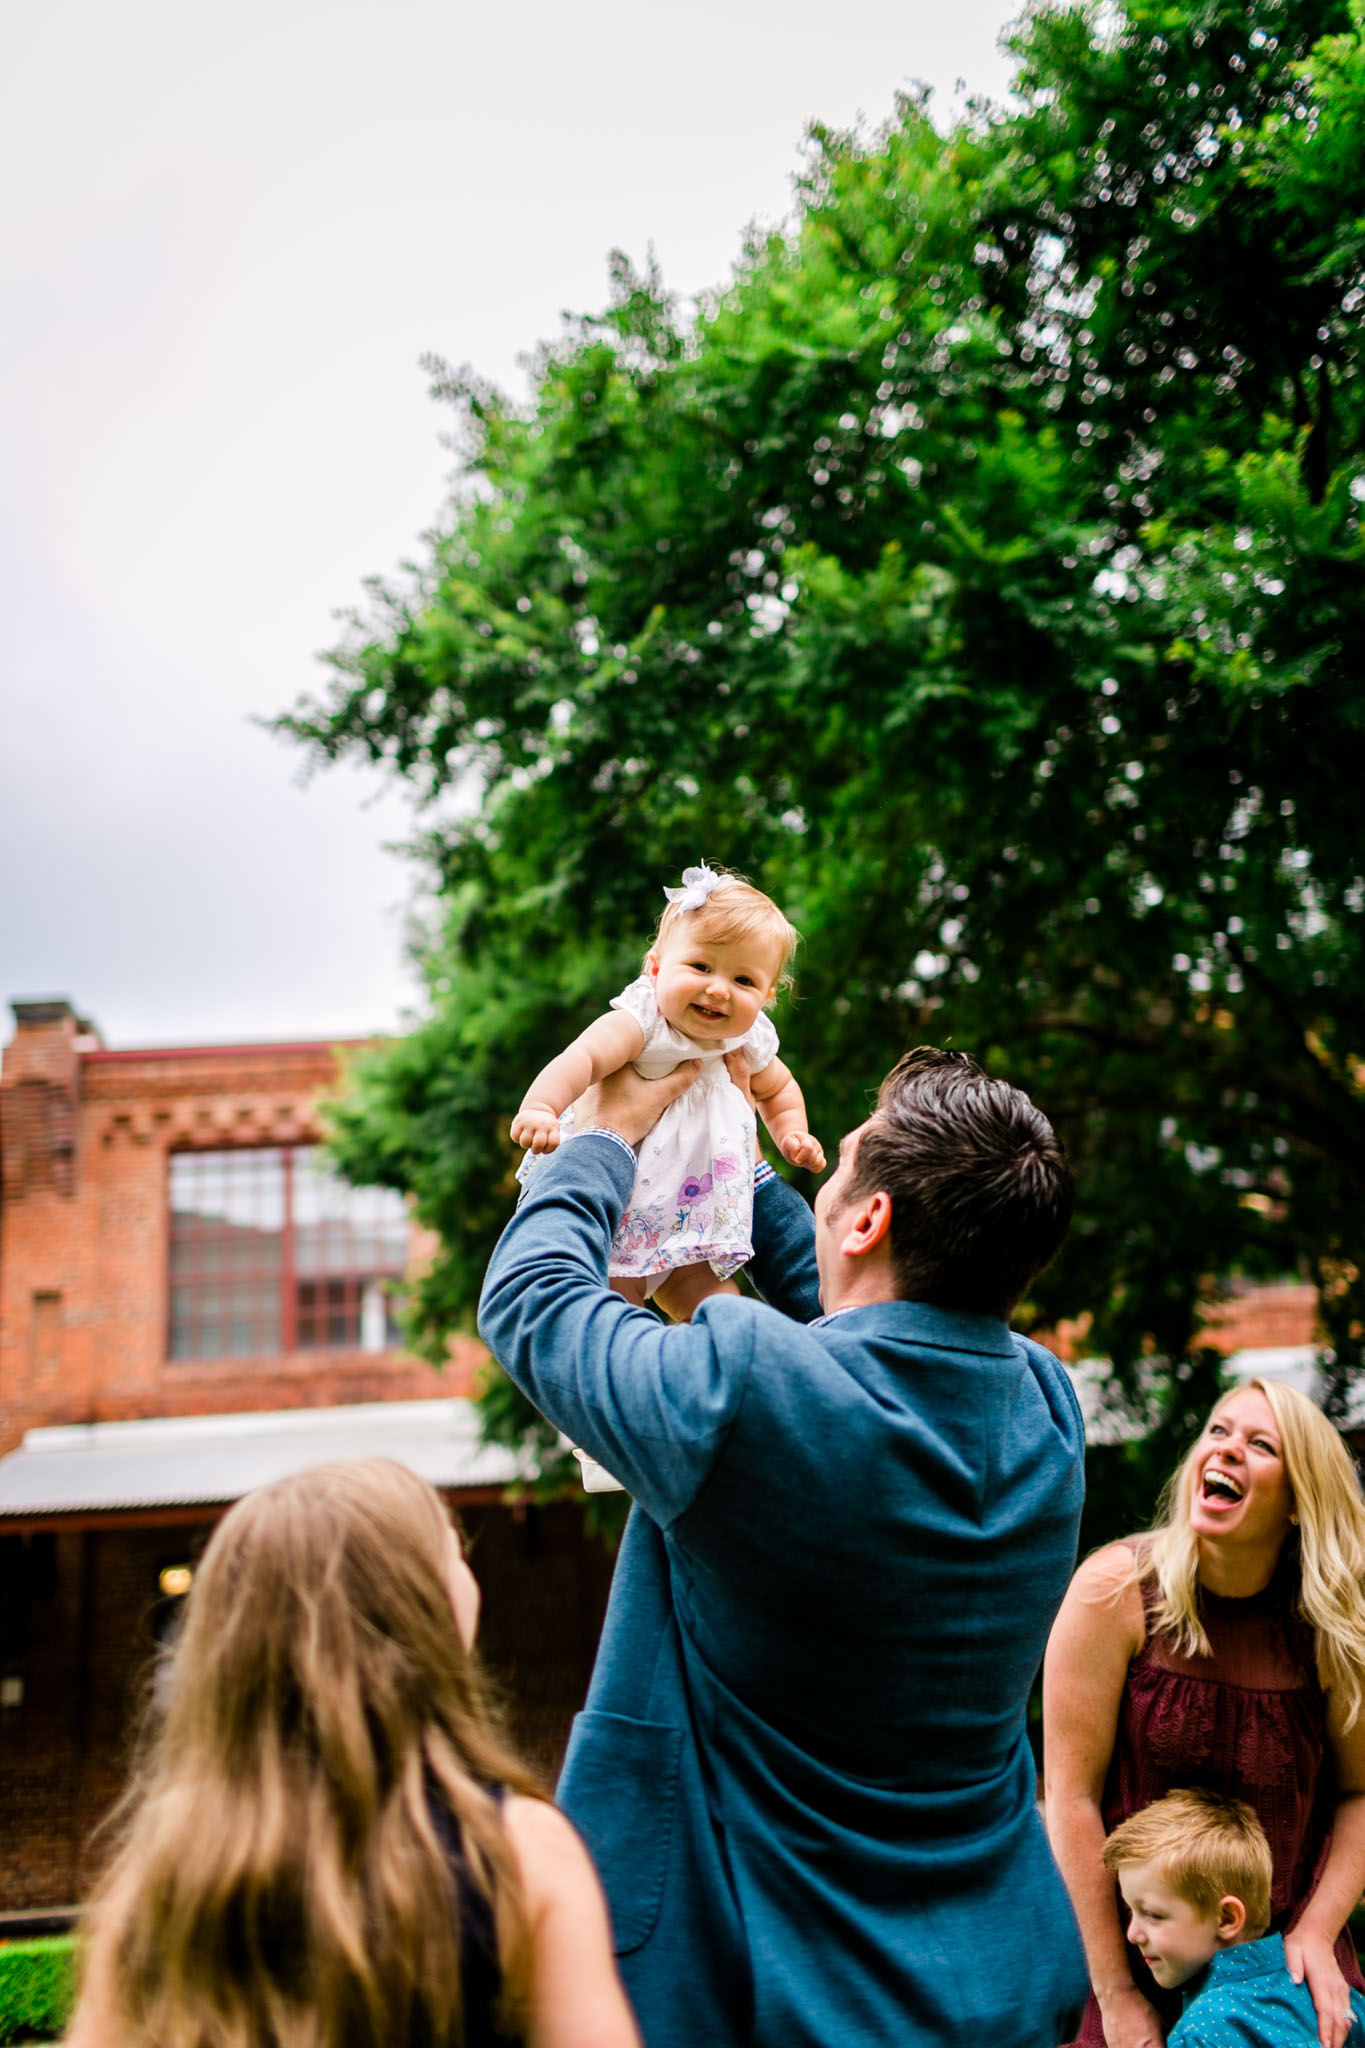 Durham Family Photographer | By G. Lin Photography | Candid lifestyle photo of dad tossing baby girl in the air